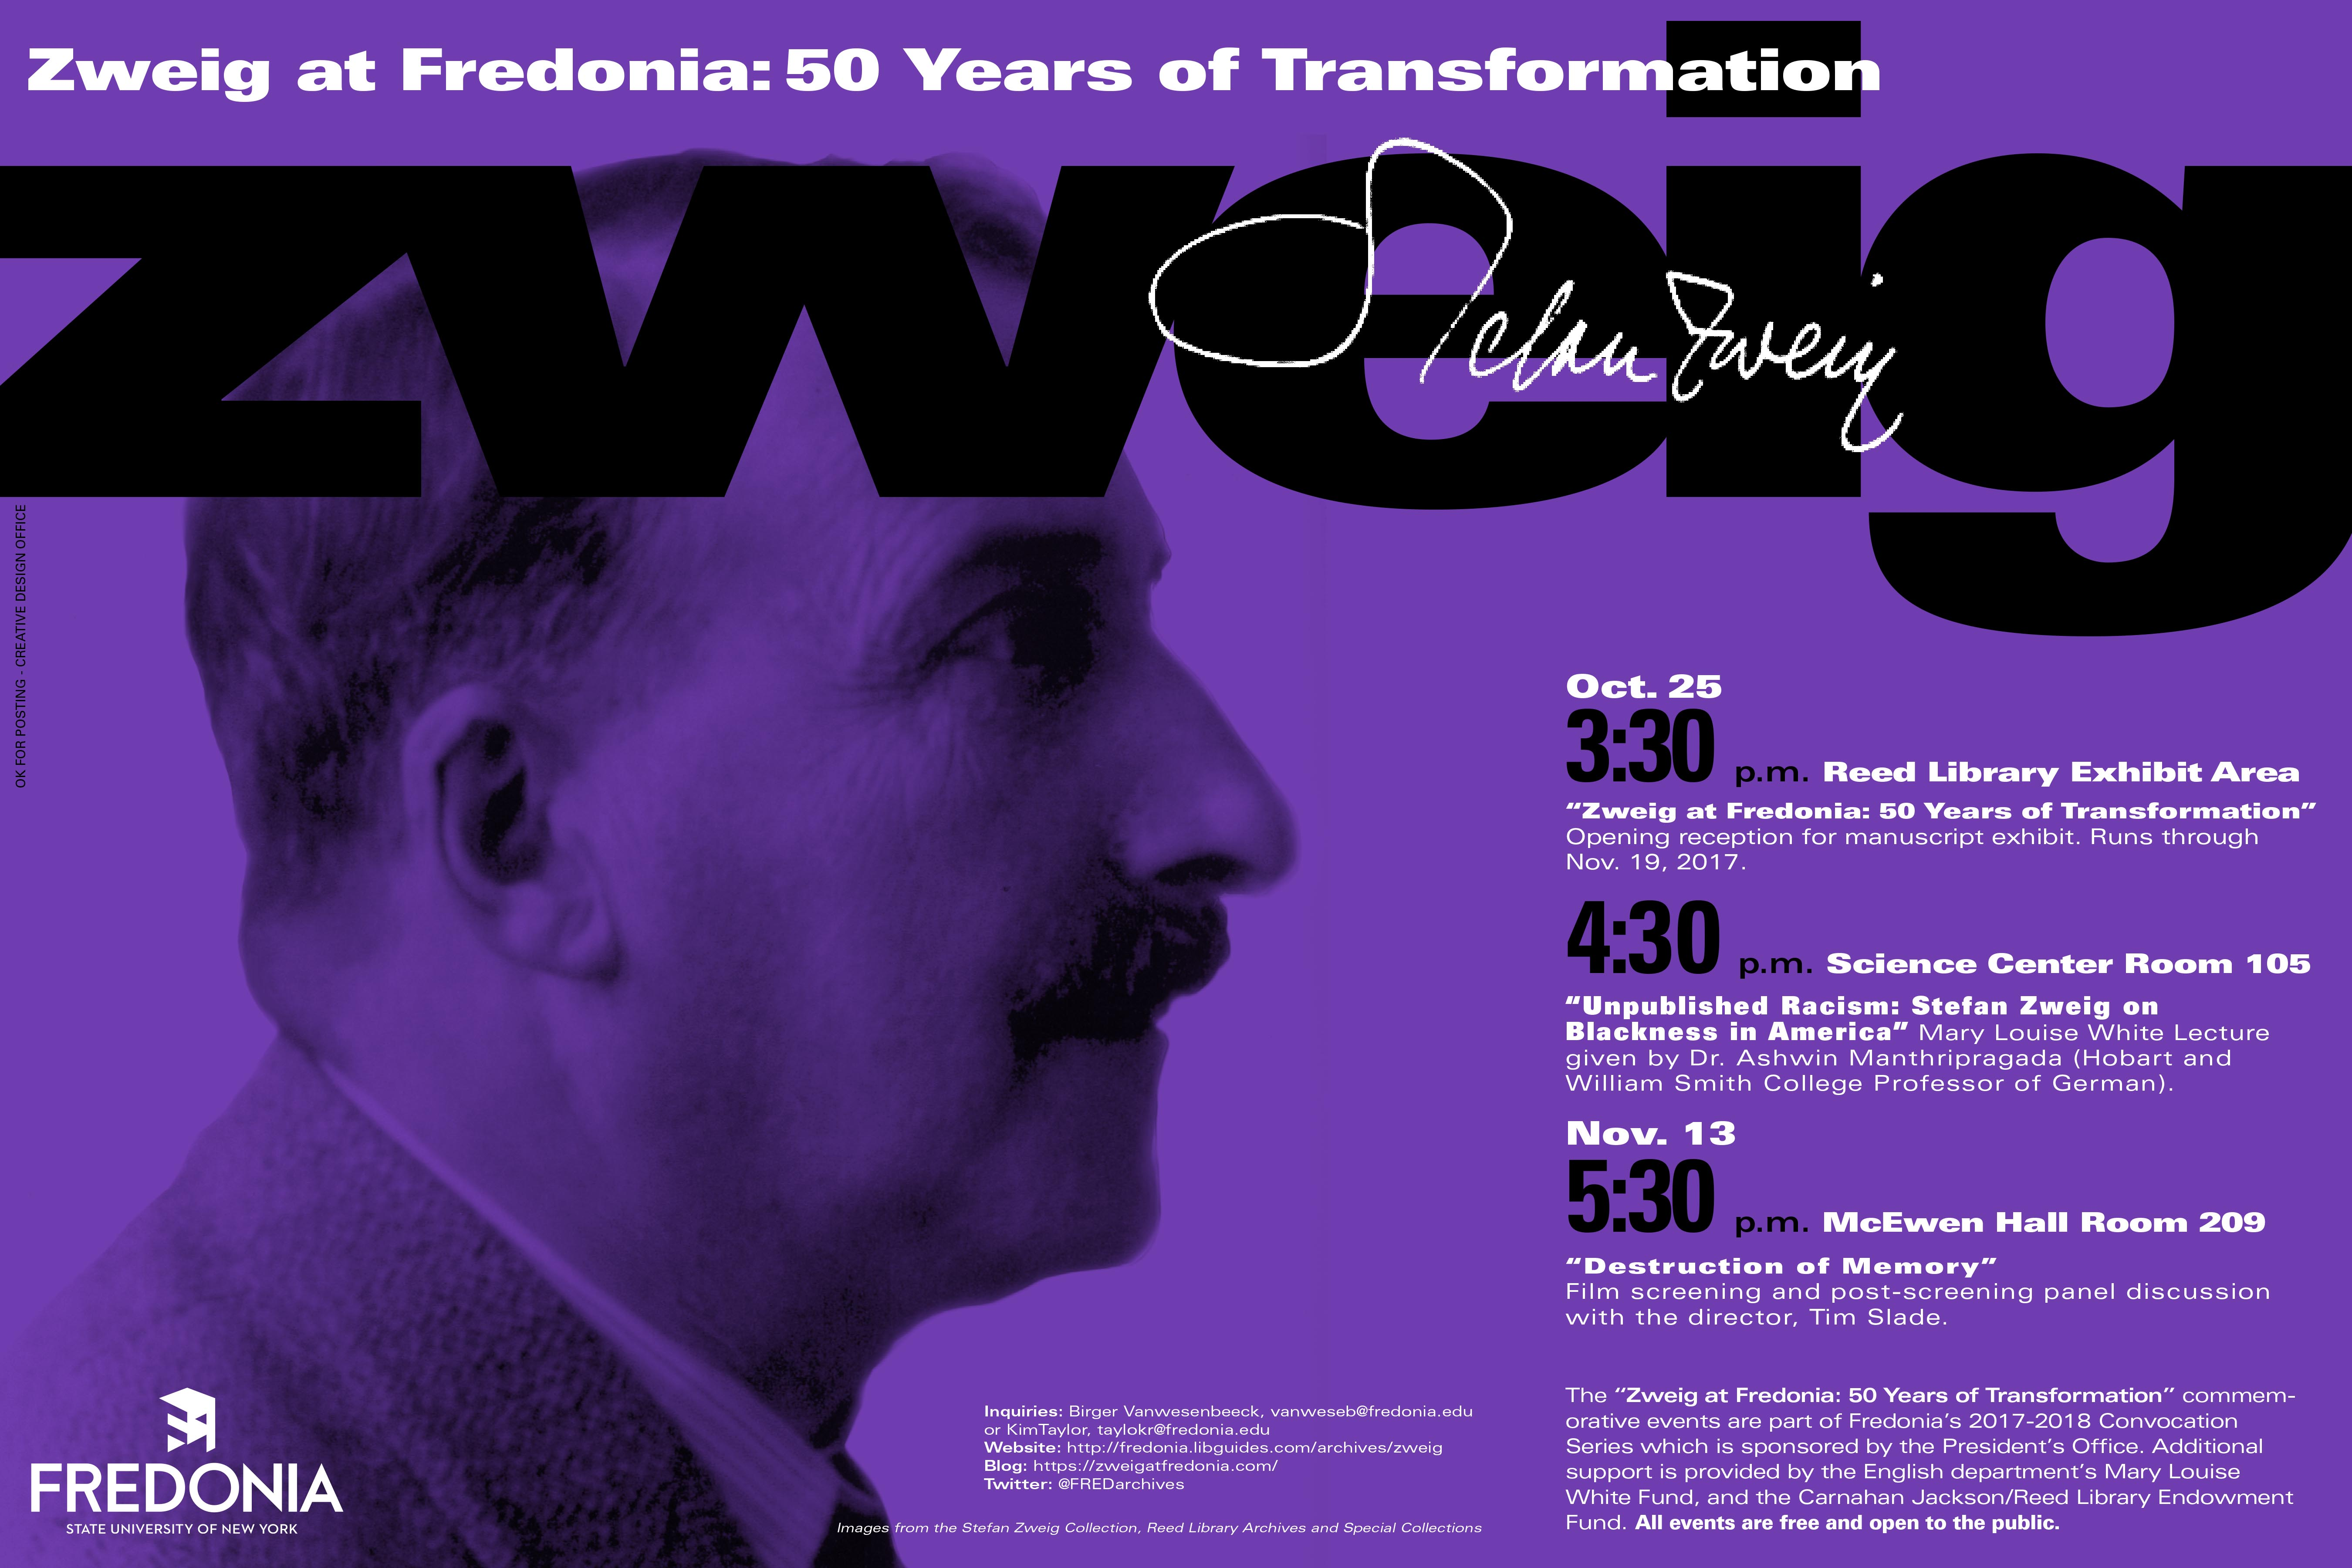 Zweig at 50 Poster, including notice of MLW Lecture by Ashwin Manthripragada, Oct. 25, 2017, 4:30-5:30 p.m., Science Center 105, Kelley Family Auditorium.